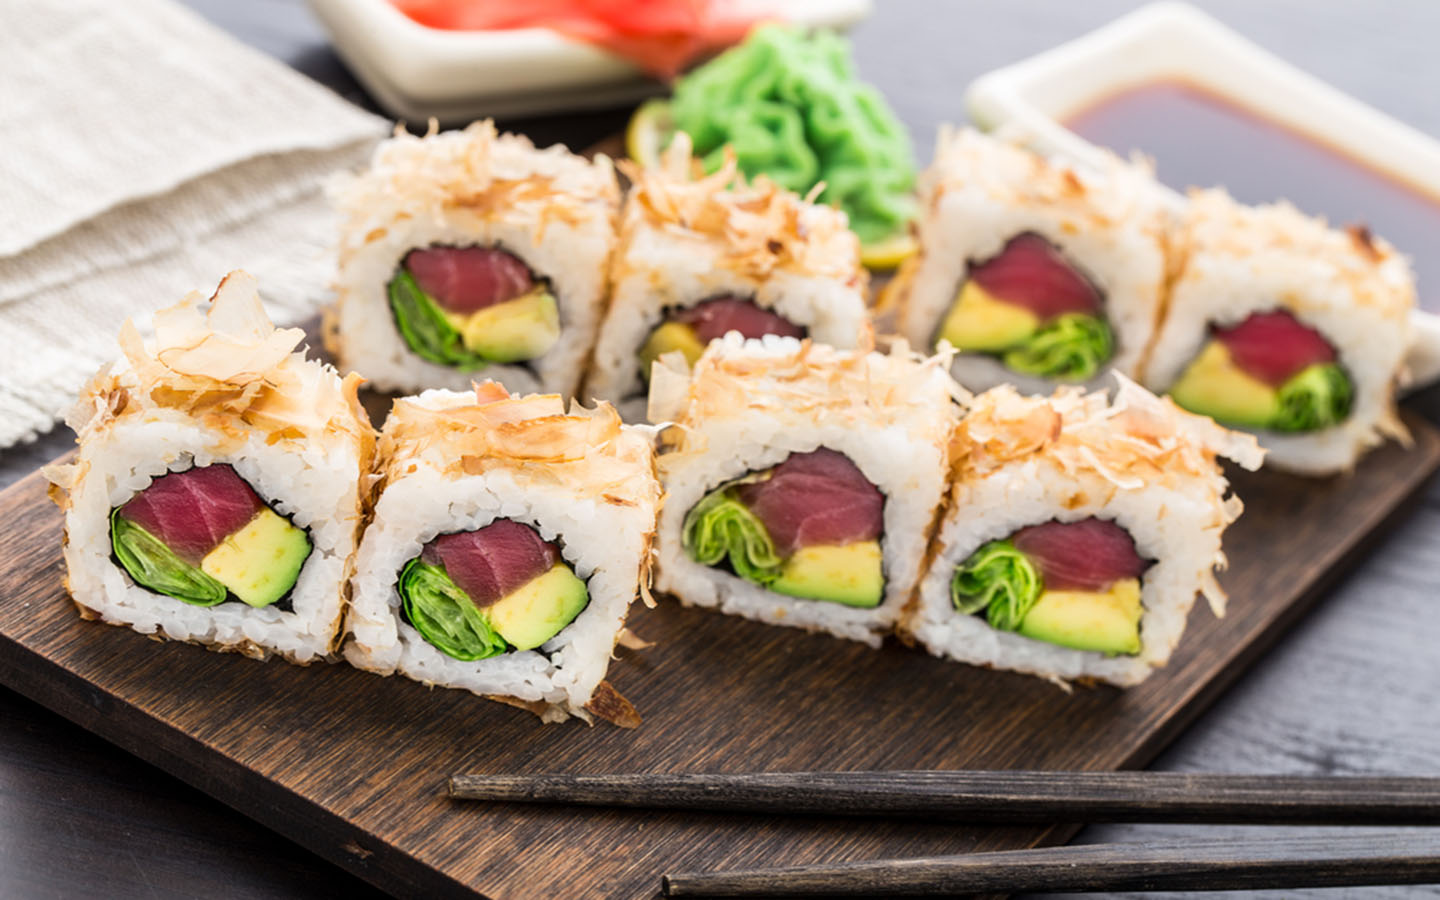 Sushi rolls at the best sushi places in Abu Dhabi